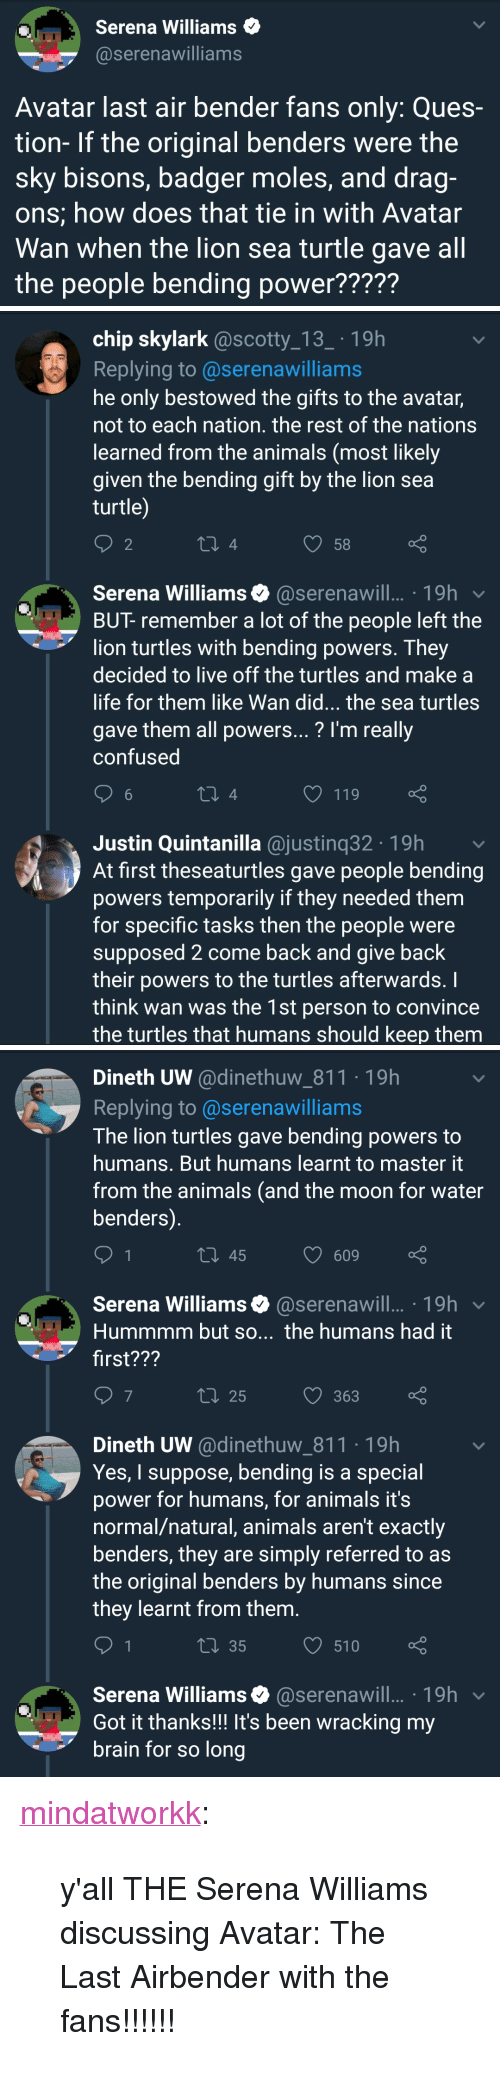 """ques: Serena Williams  @serenawilliams  Avatar last air bender fans only: Ques-  tion- If the original benders were the  sky bisons, badger moles, and drag-  ons; how does that tie in with Avatar  Wan when the lion sea turtle gave all  the people bending power?????   chip skylark @scotty_13_ 19h  Replying to@serenawilliams  he only bestowed the gifts to the avatar,  not to each nation. the rest of the nations  learned from the animals (most likely  given the bending gift by the lion sea  turtle  2  O58  Serena Williams@serenawill.. 19h  BUT- remember a lot of the people left the  lion turtles with bending powers. They  decided to live off the turtles and make a  life for them like Wan did... the sea turtles  gave them all powers...? l'm really  confused  O 119  Justin Quintanilla @justinq32 19h  At first theseaturtles gave people bending  powers temporarily if they needed them  for specific tasks then the people were  supposed 2 come back and give back  their powers to the turtles afterwards.  think wan was the 1st person to convince  the turtles that humans should keep them   Dineth UW @dinethuw_811.19h  Replying to @serenawilliams  The lion turtles gave bending powers to  humans. But humans learnt to master it  from the animals (and the moon for water  benders)  10 45  609 ç  Serena Williams@serenawill.. 19h  Hummmm but so... the humans had it  first???  t 25  363  Dineth UW @dinethuw_811 19h  Yes, I suppose, bending is a special  power for humans, for animals it's  normal/natural, animals aren't exactly  benders, they are simply referred to as  the original benders by humans since  they learnt from them  t 35  O 510  Serena Williams@serenawill.. 19h  Got it thanks!!! It's been wracking my  brain for so long <p><a href=""""http://mindatworkk.tumblr.com/post/172081825853/yall-the-serena-williams-discussing-avatar-the"""" class=""""tumblr_blog"""" target=""""_blank"""">mindatworkk</a>:</p><blockquote><p>y'all THE Serena Williams discussing Avatar: The Last Airbender with the fans!!!!"""